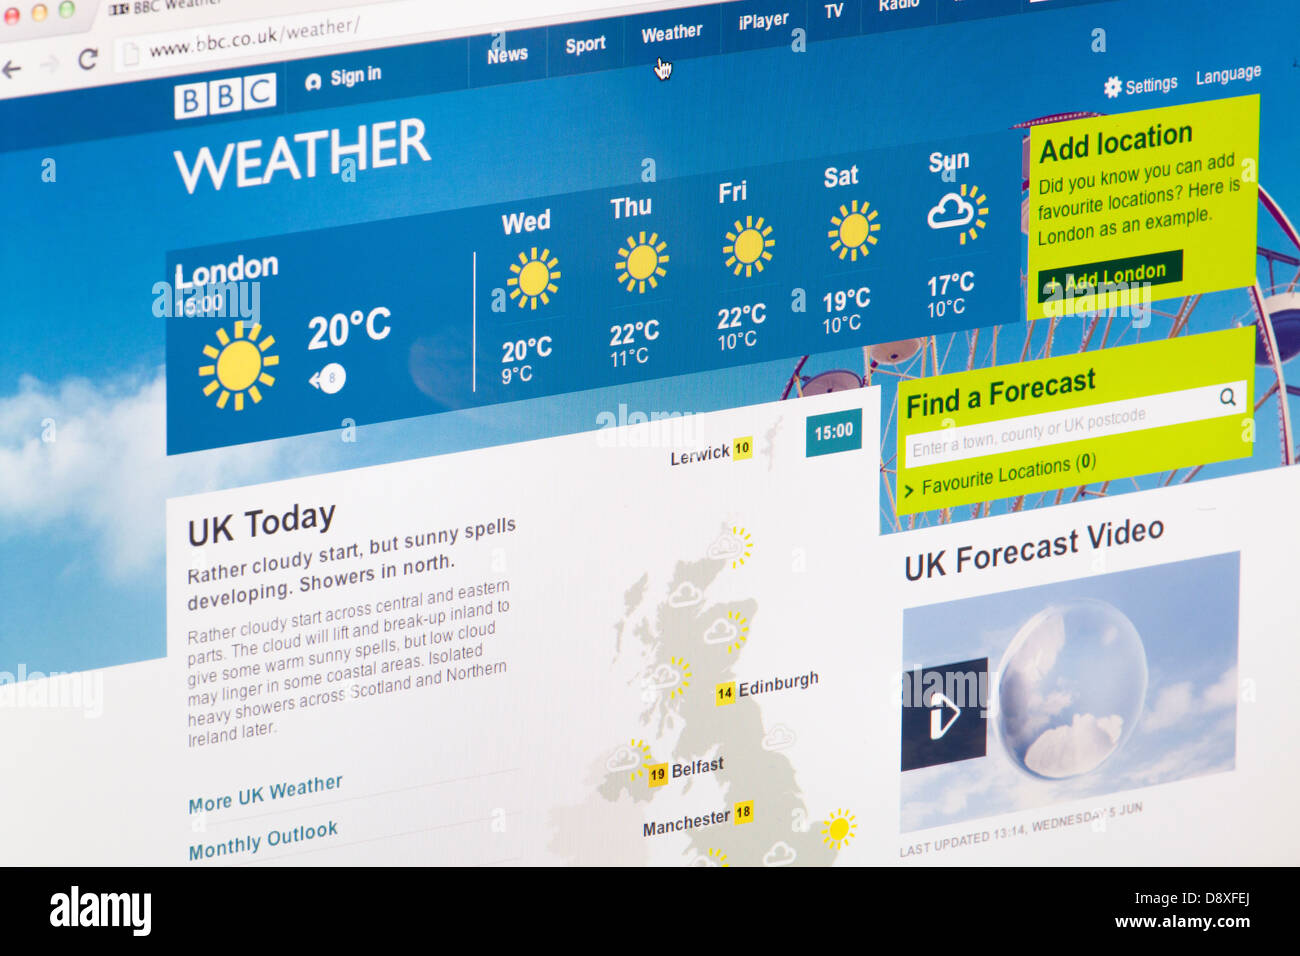 BBC Weather Home page site Web ou une page web sur un écran d'ordinateur portable ou un écran d'ordinateur Photo Stock